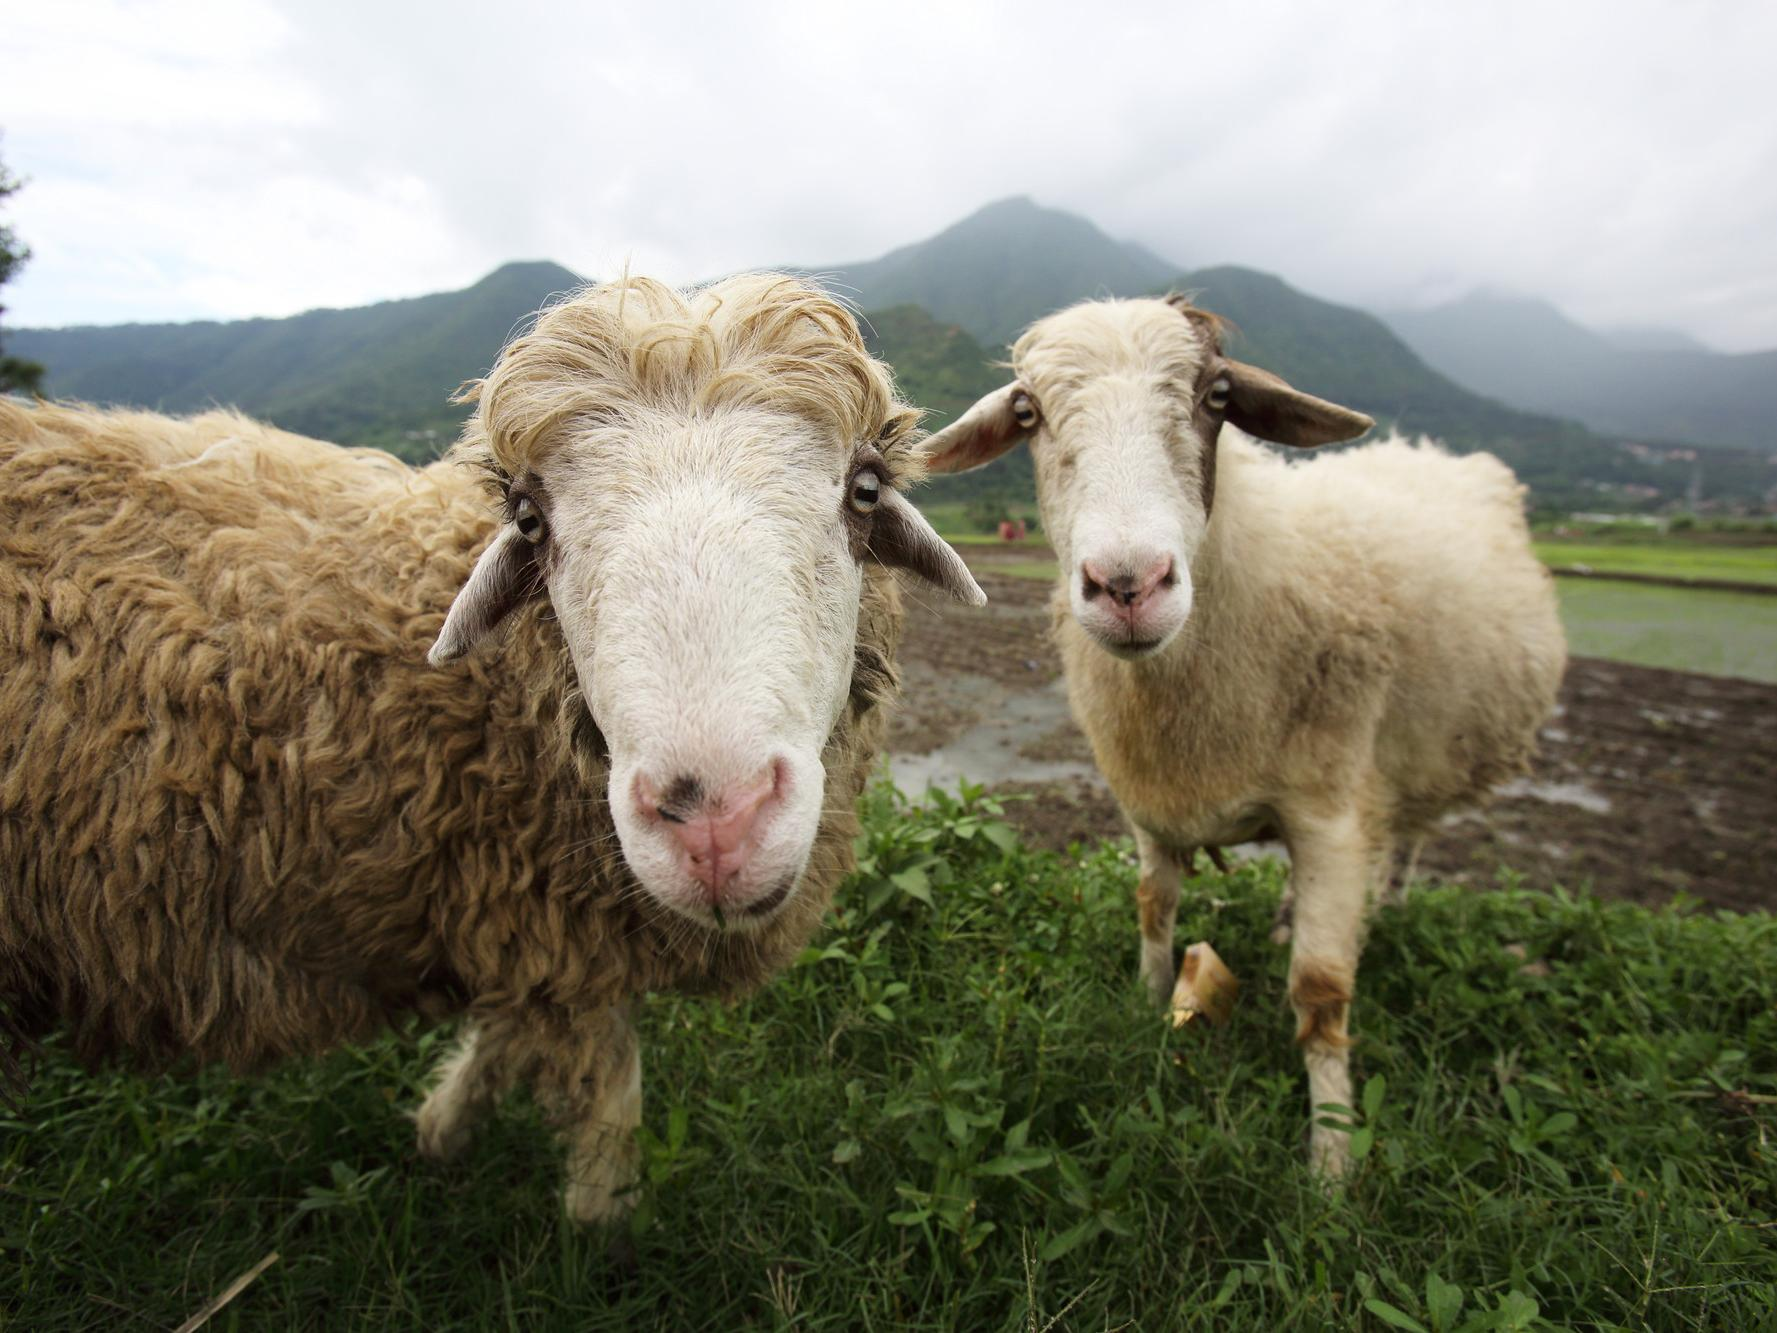 Sheep, Kirtipur, Kathmandu Valley, Nepal. Photo: J. Holmes (IWMI)